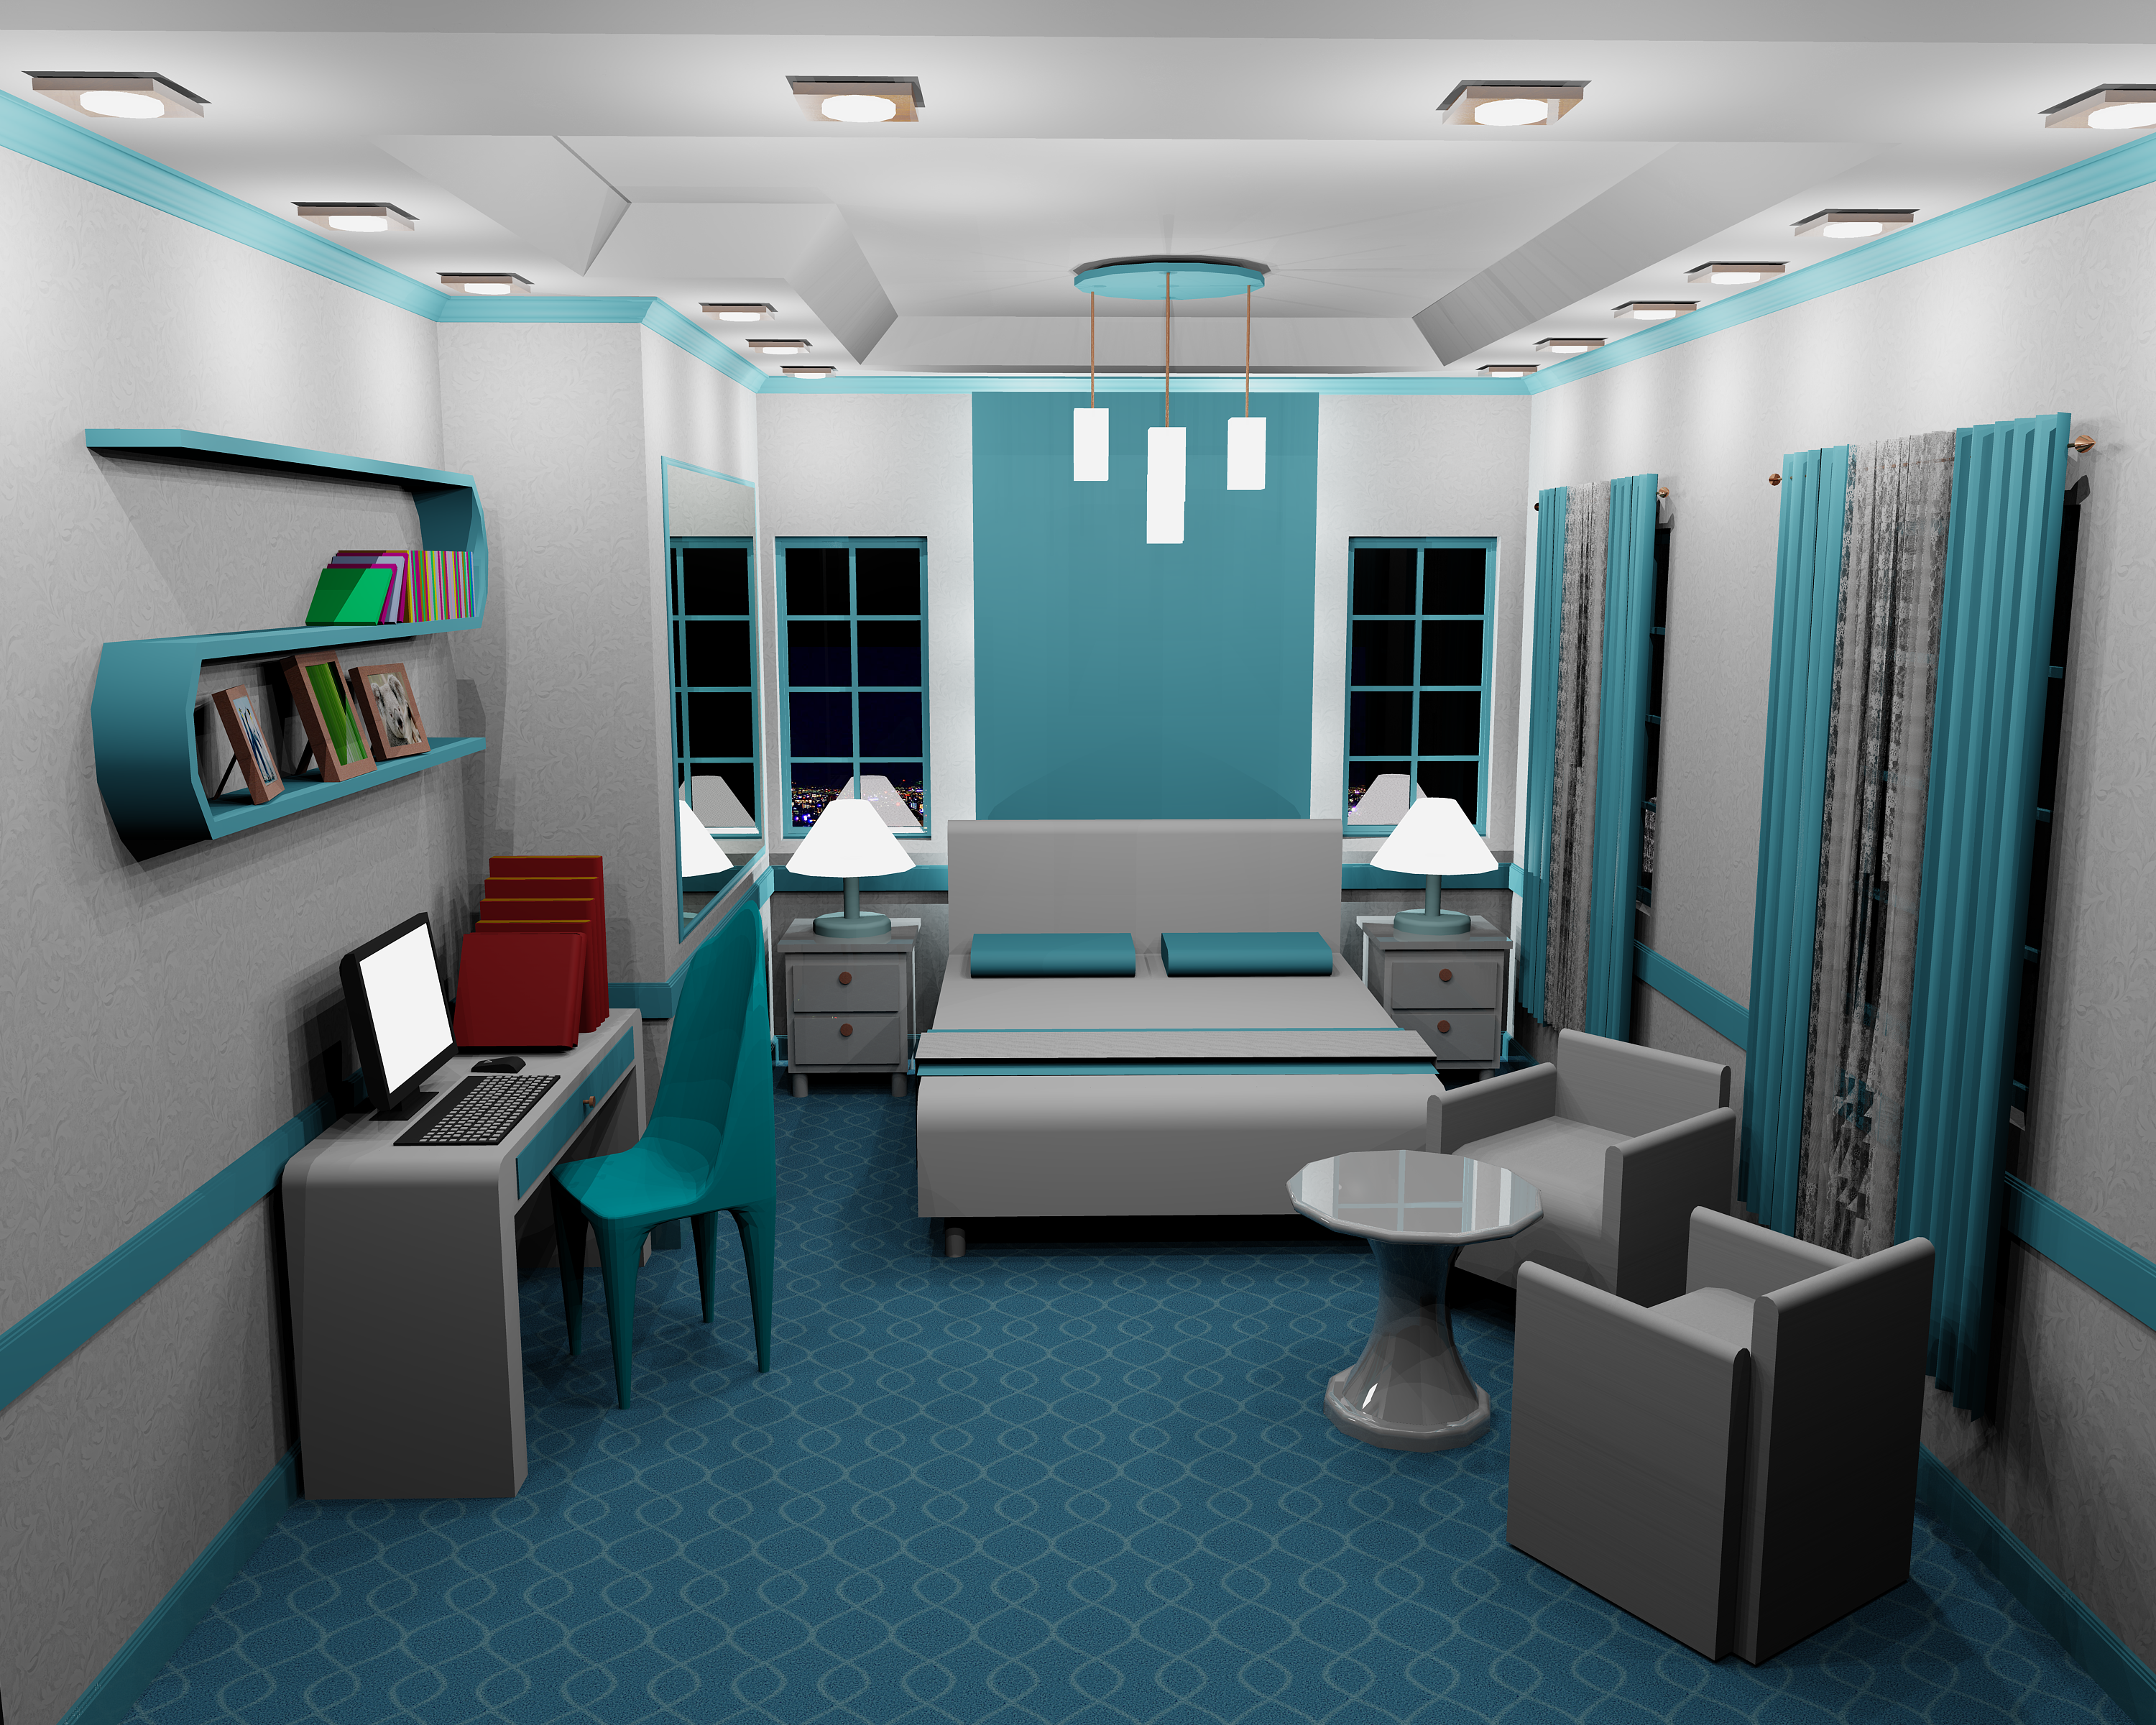 3D Interior design using utoD by IamHulyeta on Deviantrt - ^